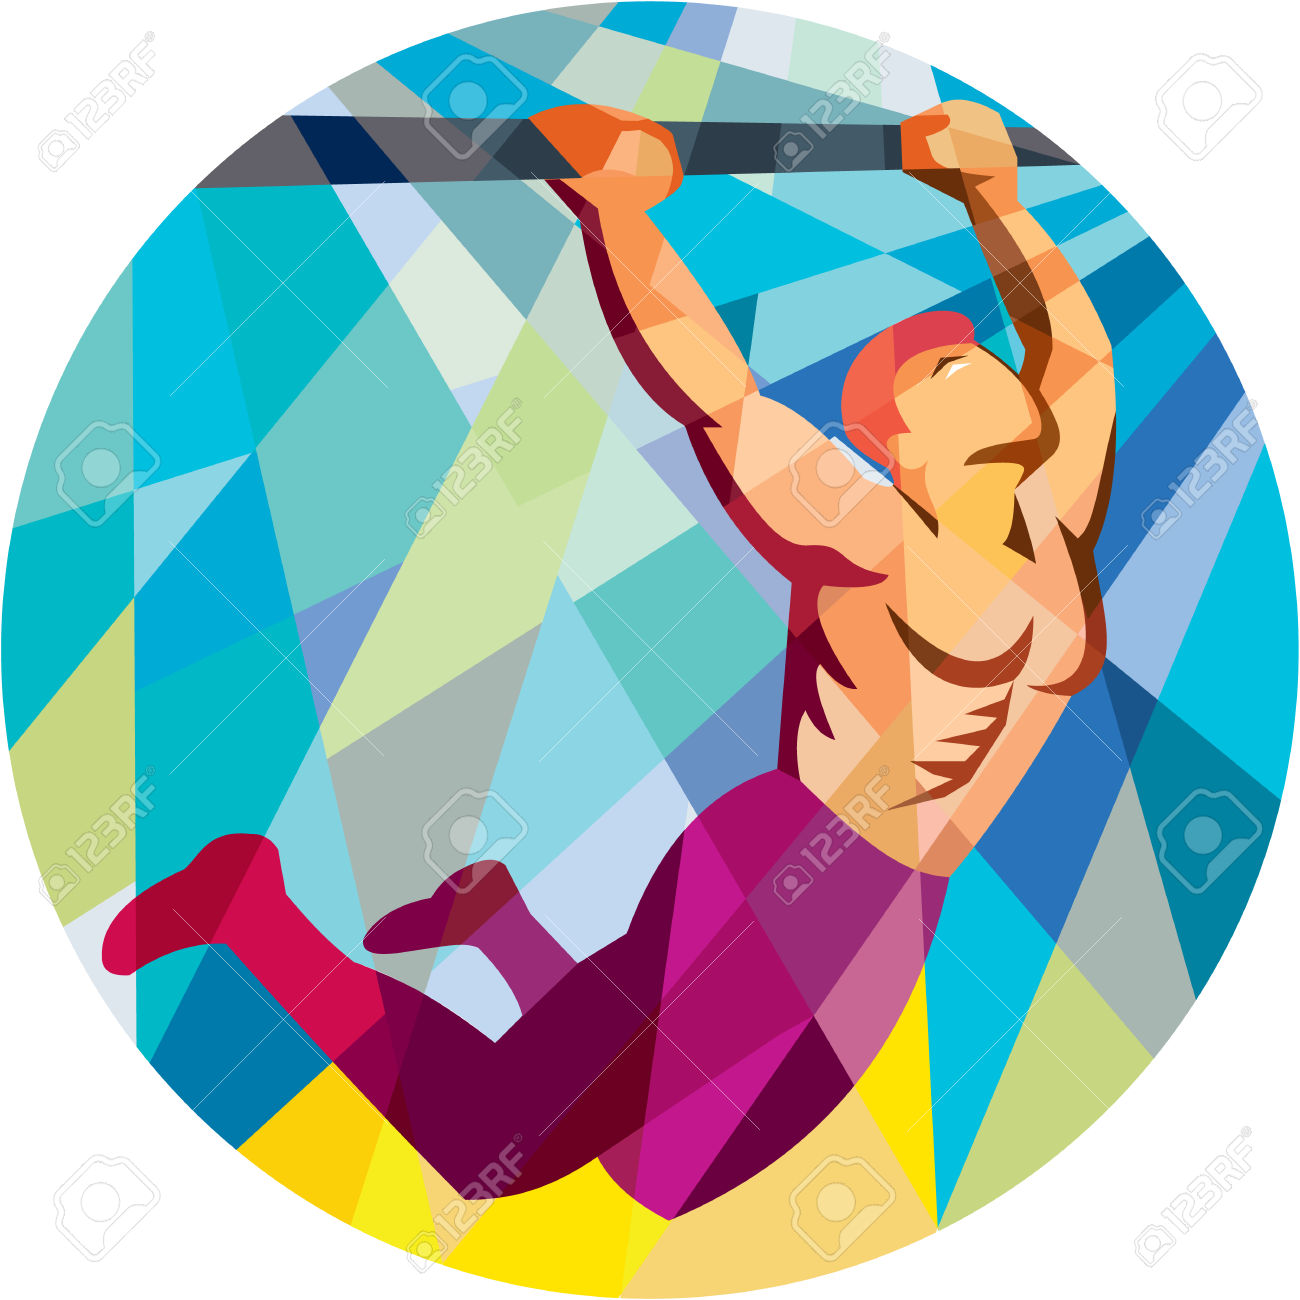 Low Polygon Style Illustration Of A Crossfit Athlete Body Weight.